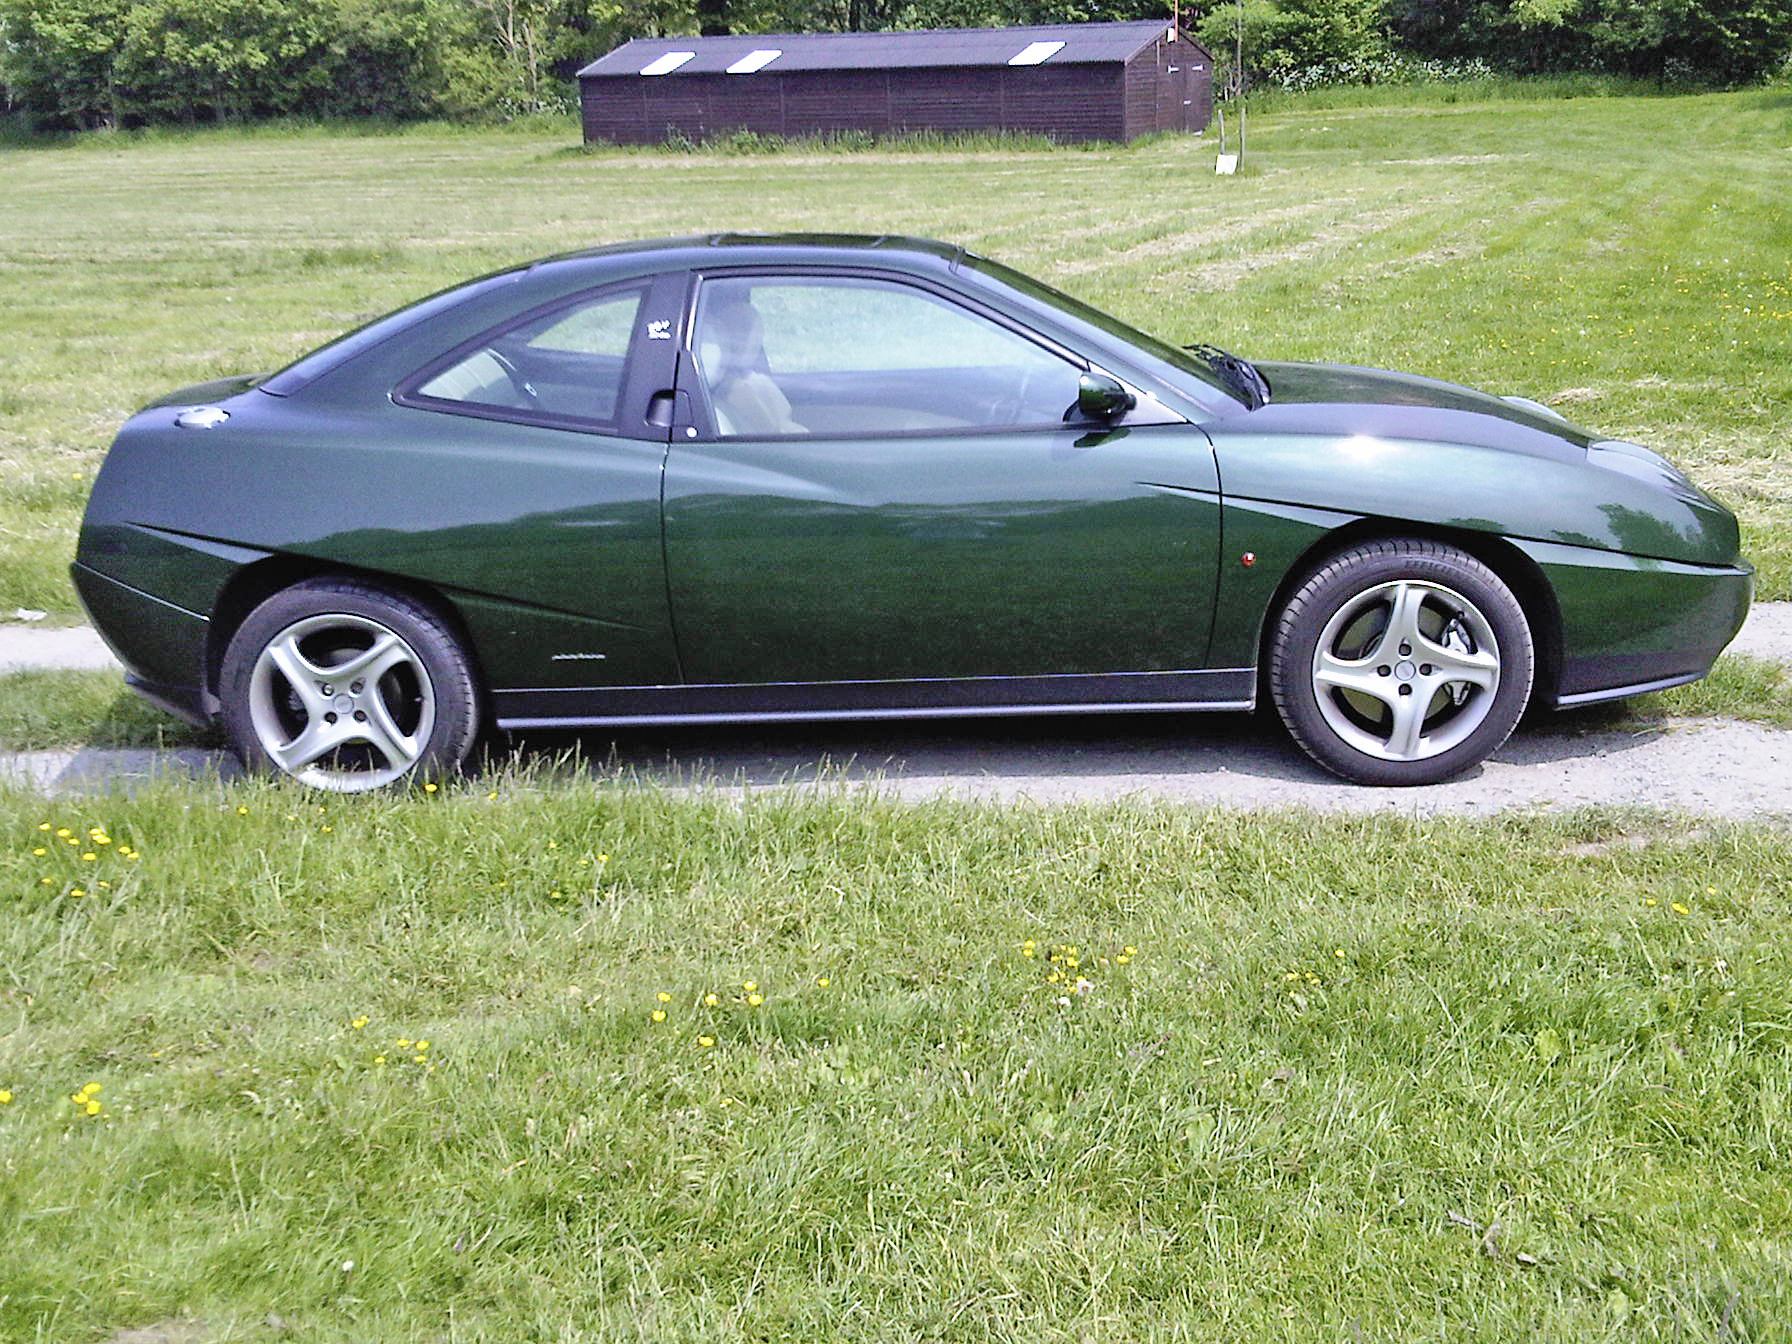 Fiat coupe green.jpg